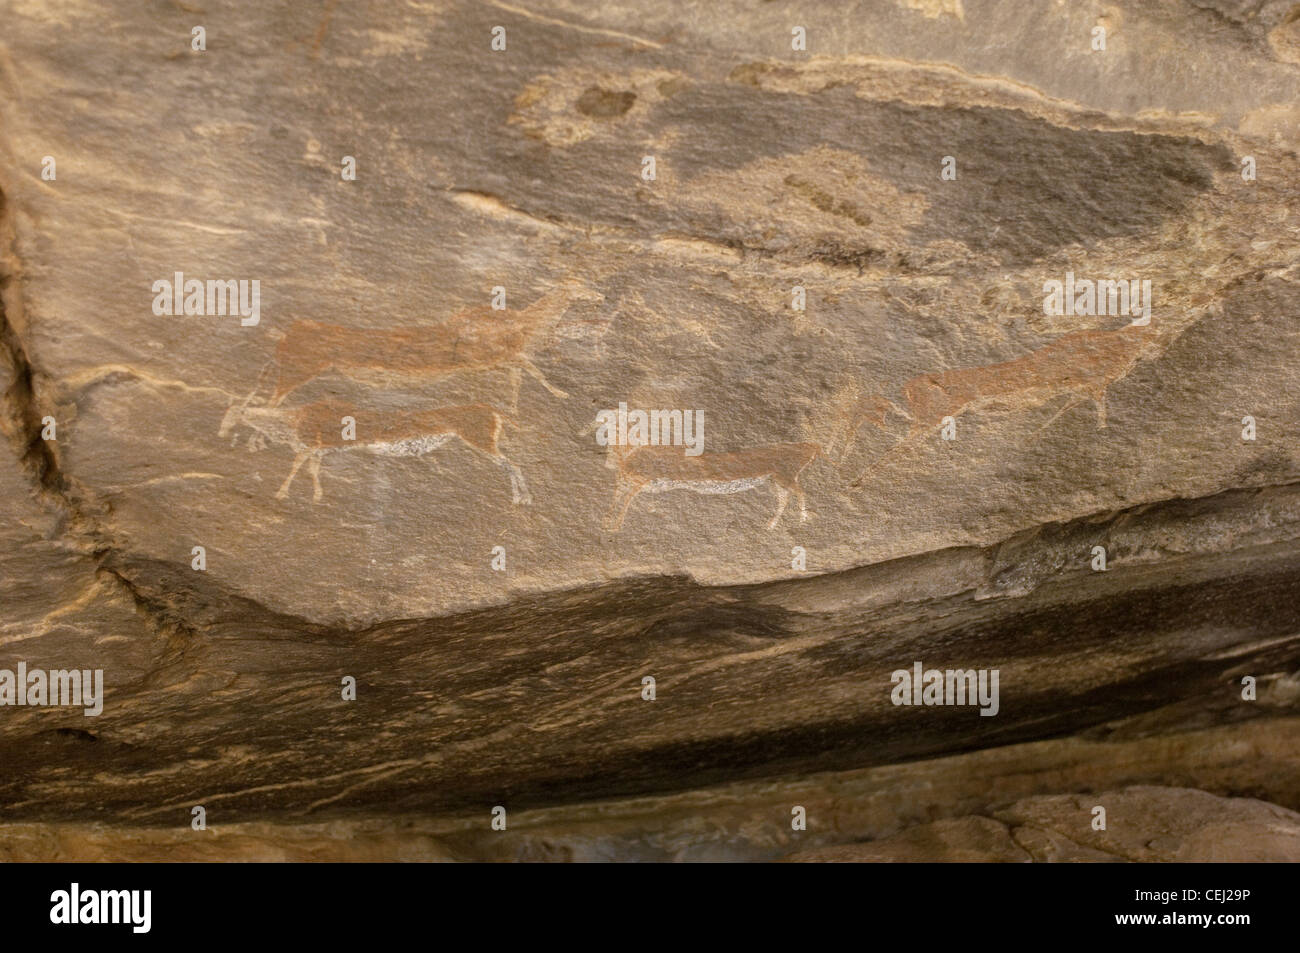 Bushman paintings near Ficksburg,Eastern Free State Province - Stock Image